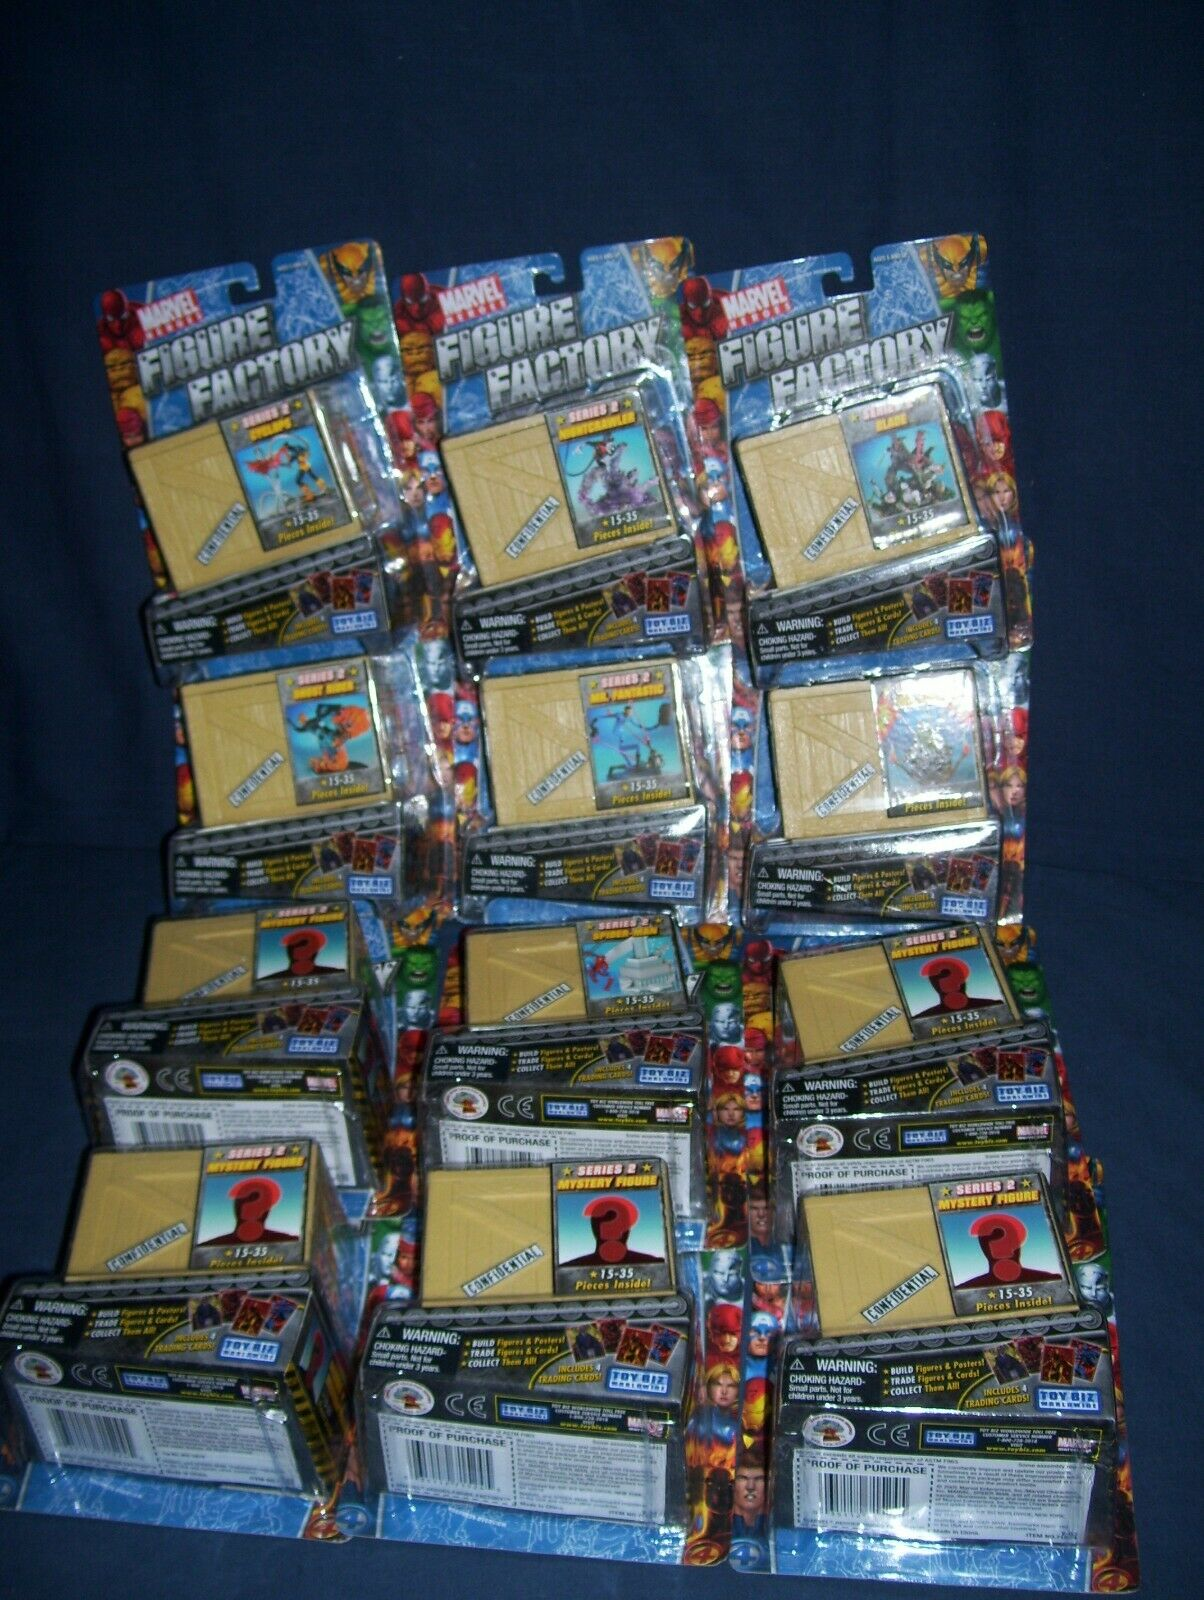 Marvel cifra Factory Series 2 completare Set Set Set with Mystery cifras ad3d01